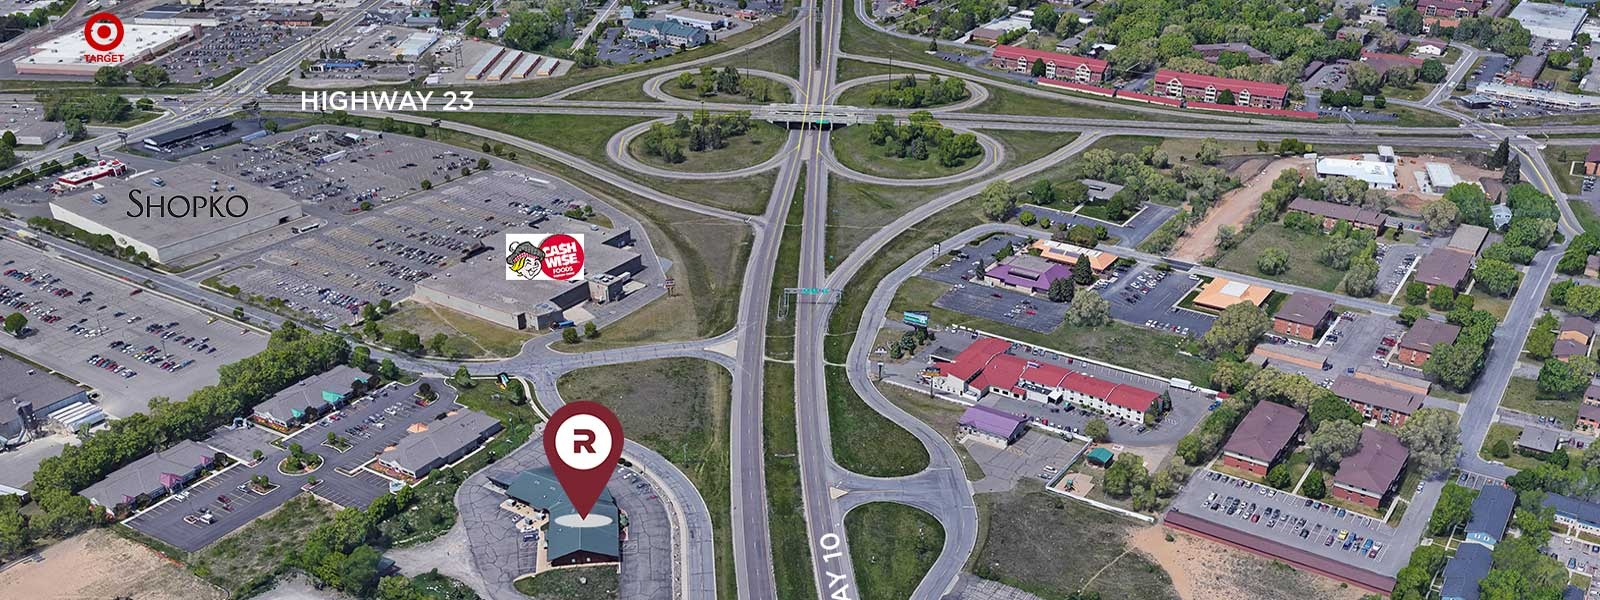 525 Highway 10 South,St. Cloud,Minnesota,United States 56304,Office,Highway 10 South,1,1019